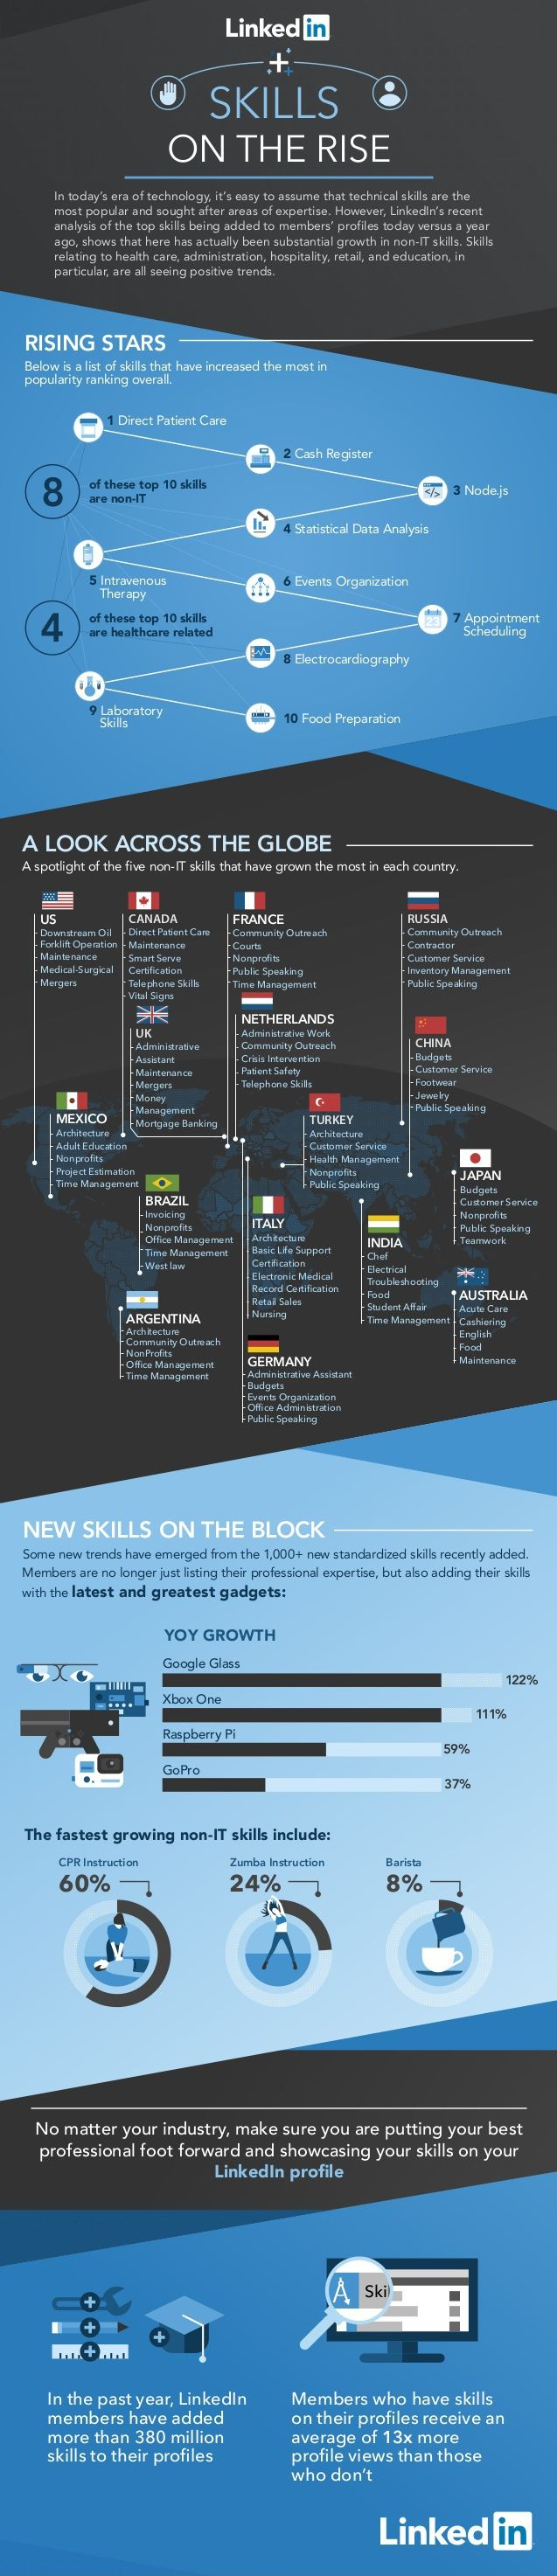 best images about job skills skills list job explore the most popular skills added by linkedin users to their profiles globally